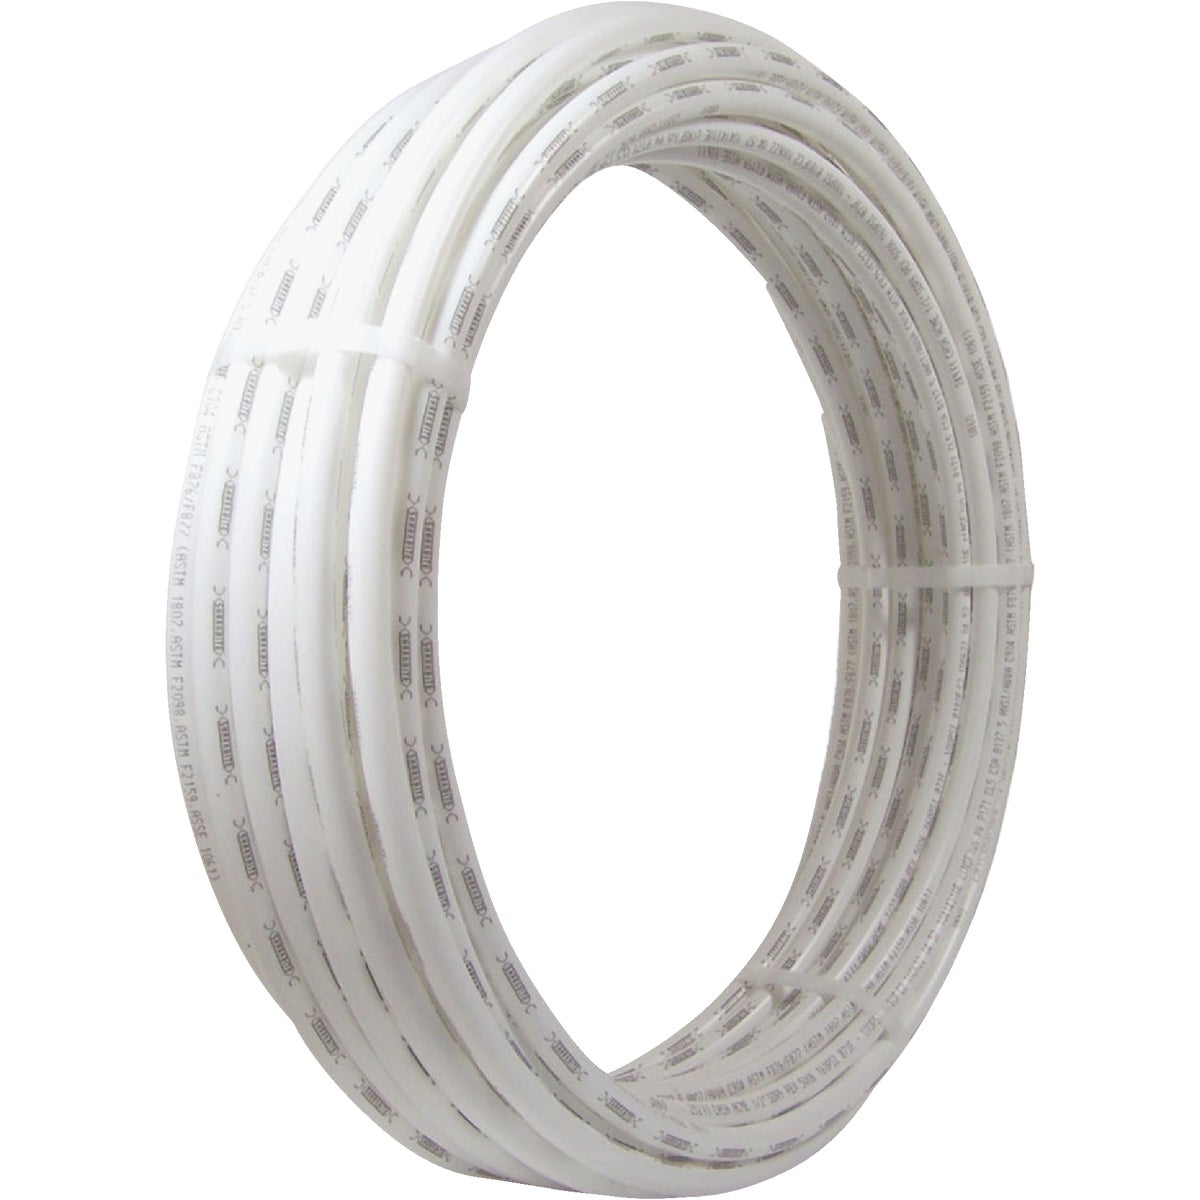 "1/4""X100' WHT PEX TUBING - WPTC04-100W by Watts Regulator Co"